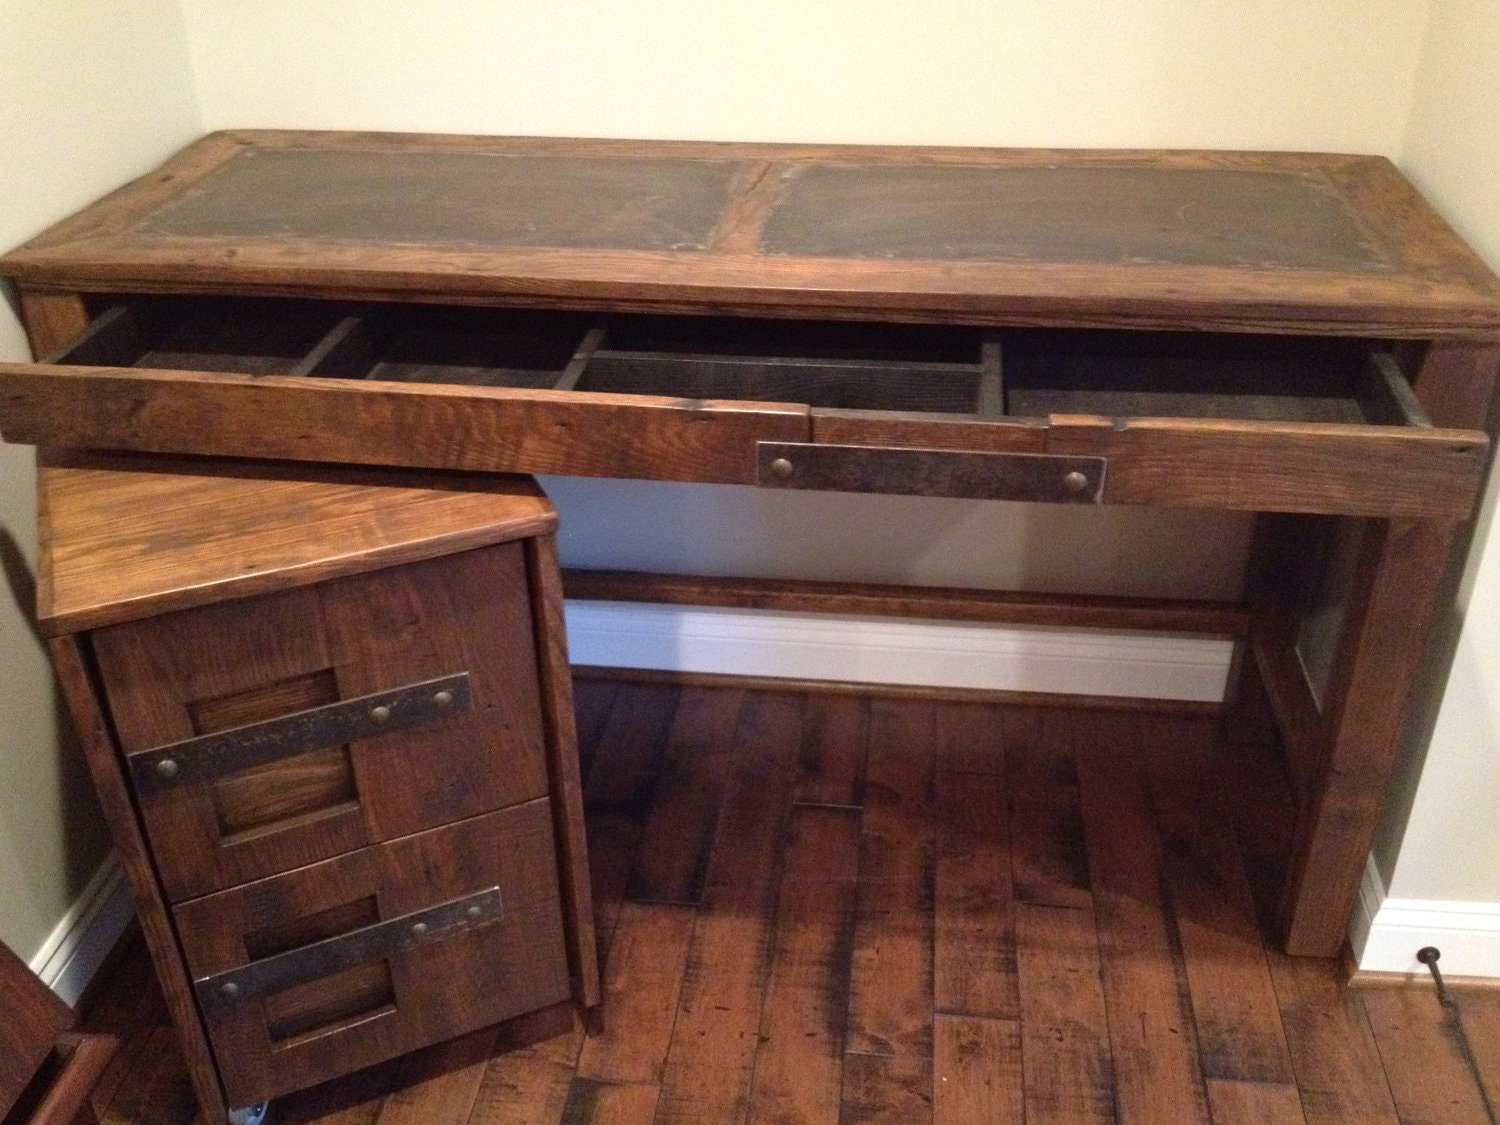 Steel Top Desk and File Cabinet